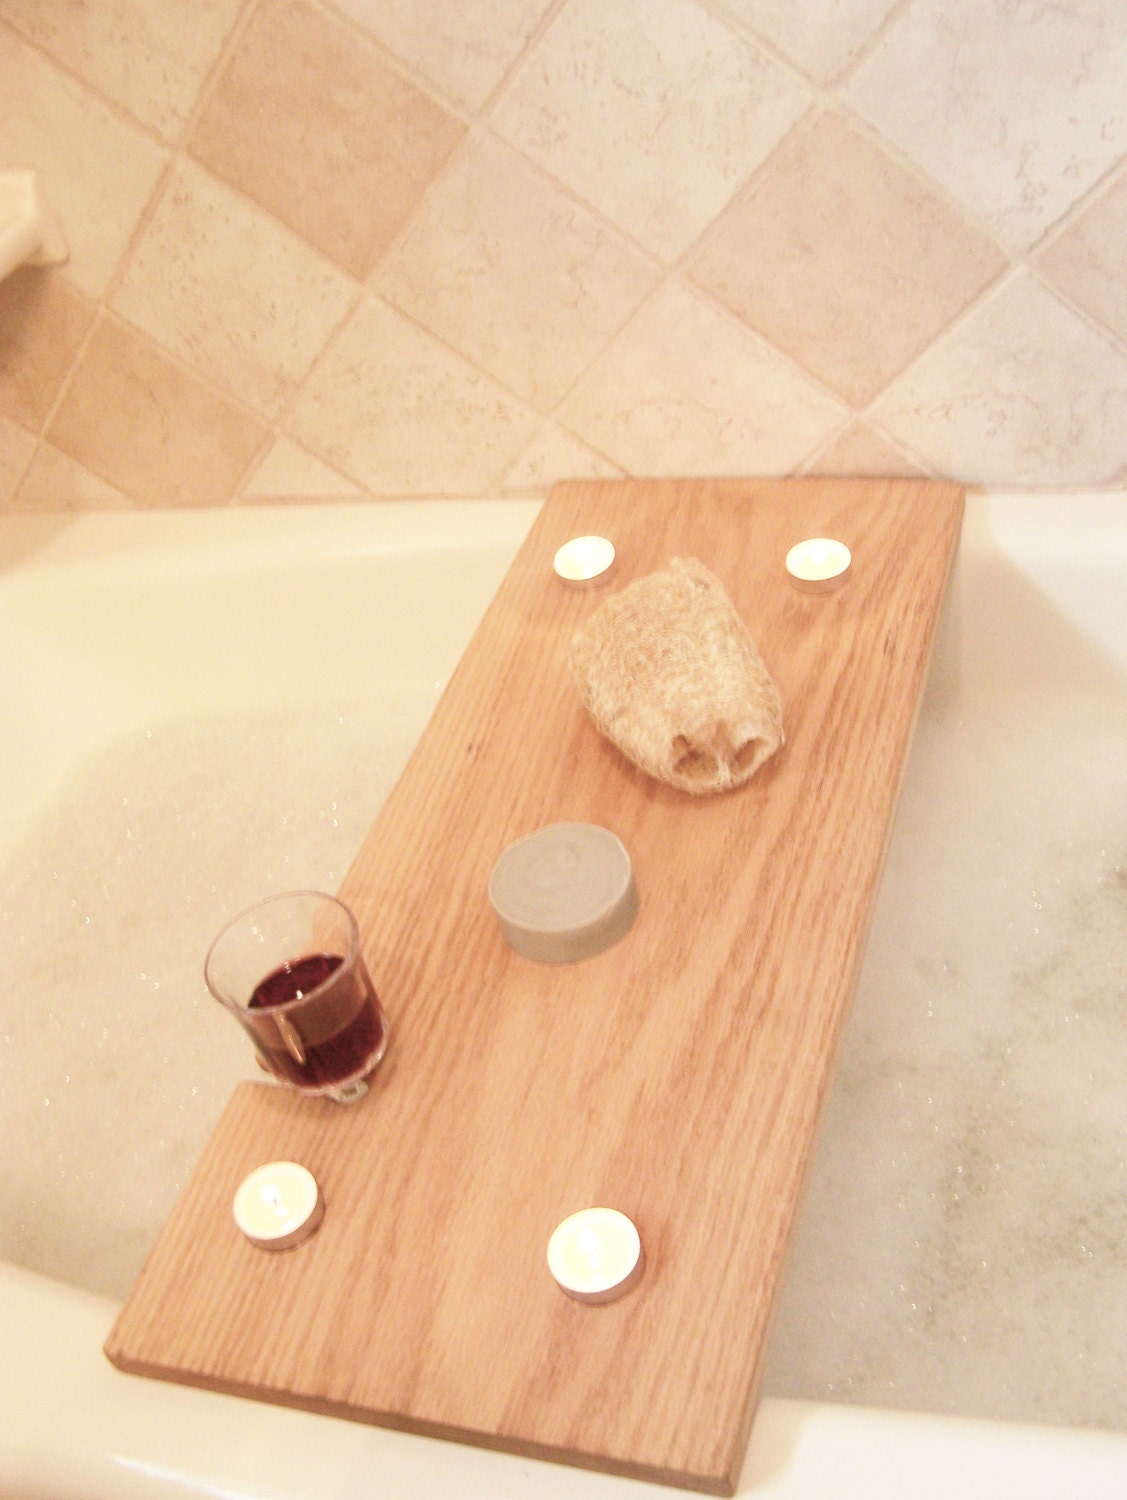 Handcrafted Wood Bath Tray   Oak Bath Caddy with tealight holder and wine glass holder   Bath Bench. Bath tray wine glass   Etsy